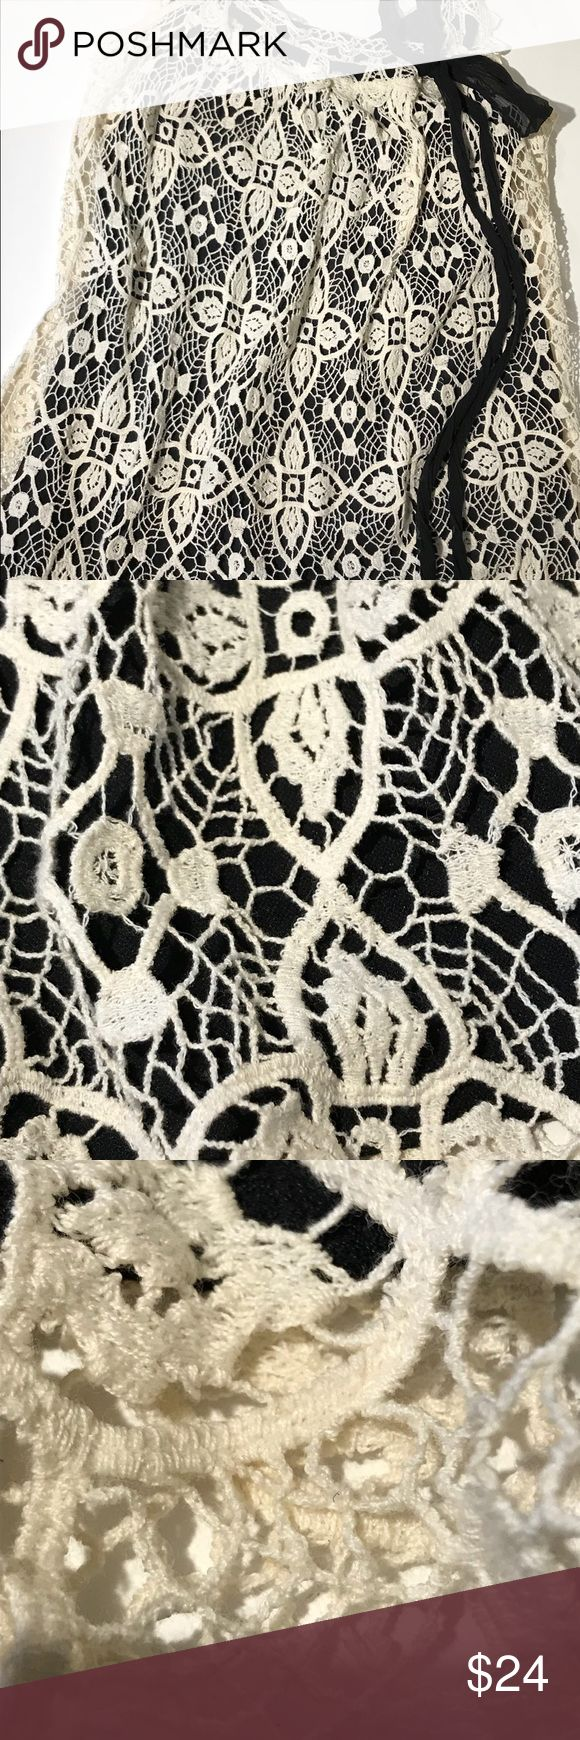 Karen Kane Med Cream Lace Tank w/Black Cami Karen Kane Stunning lace Cream Tank/Black Cami underlying Size Med this item is preowned, in EUC no stains, wholes or other defects. Karen Kane Tops Tank Tops